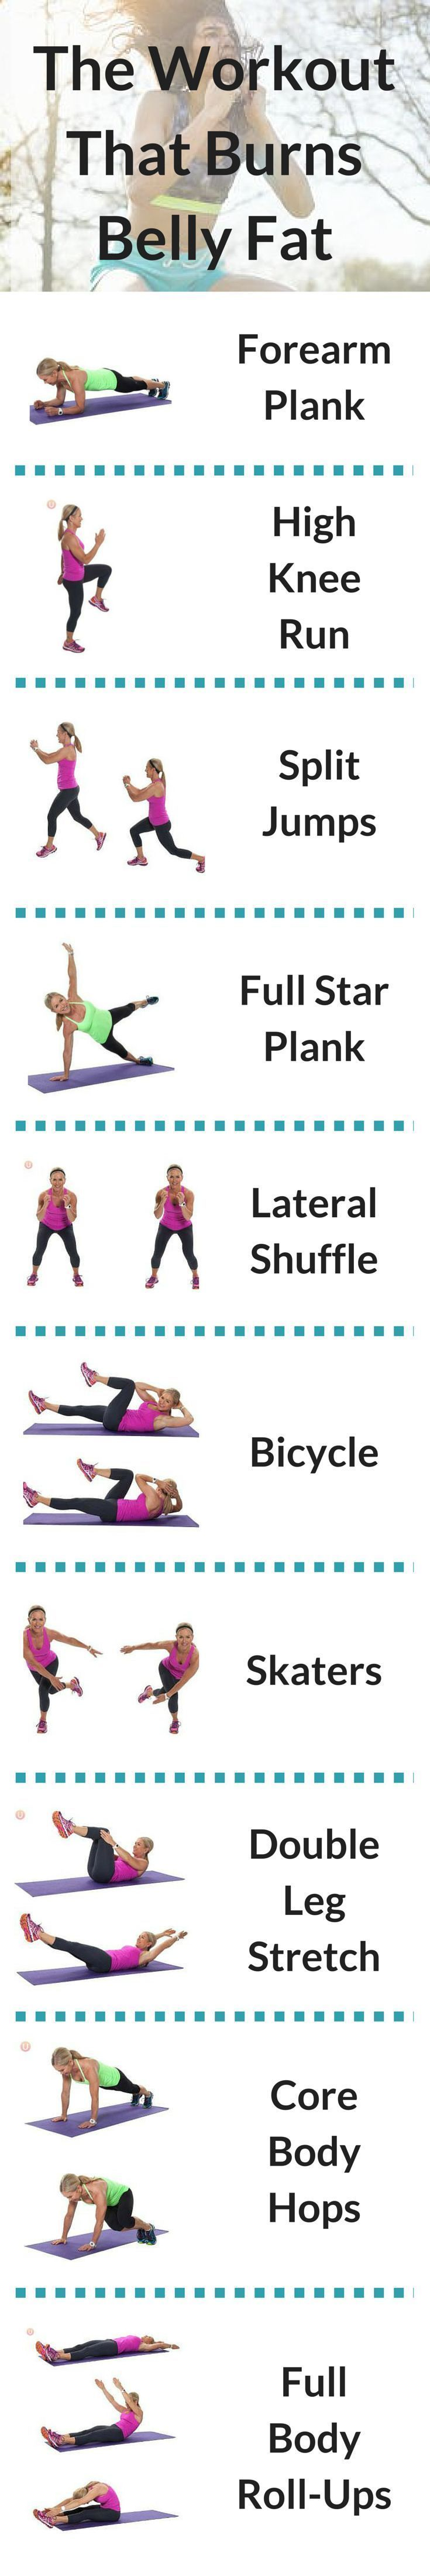 See more here ► https://www.youtube.com/watch?v=3qKhPjyBqW0 Tags: health tips to…